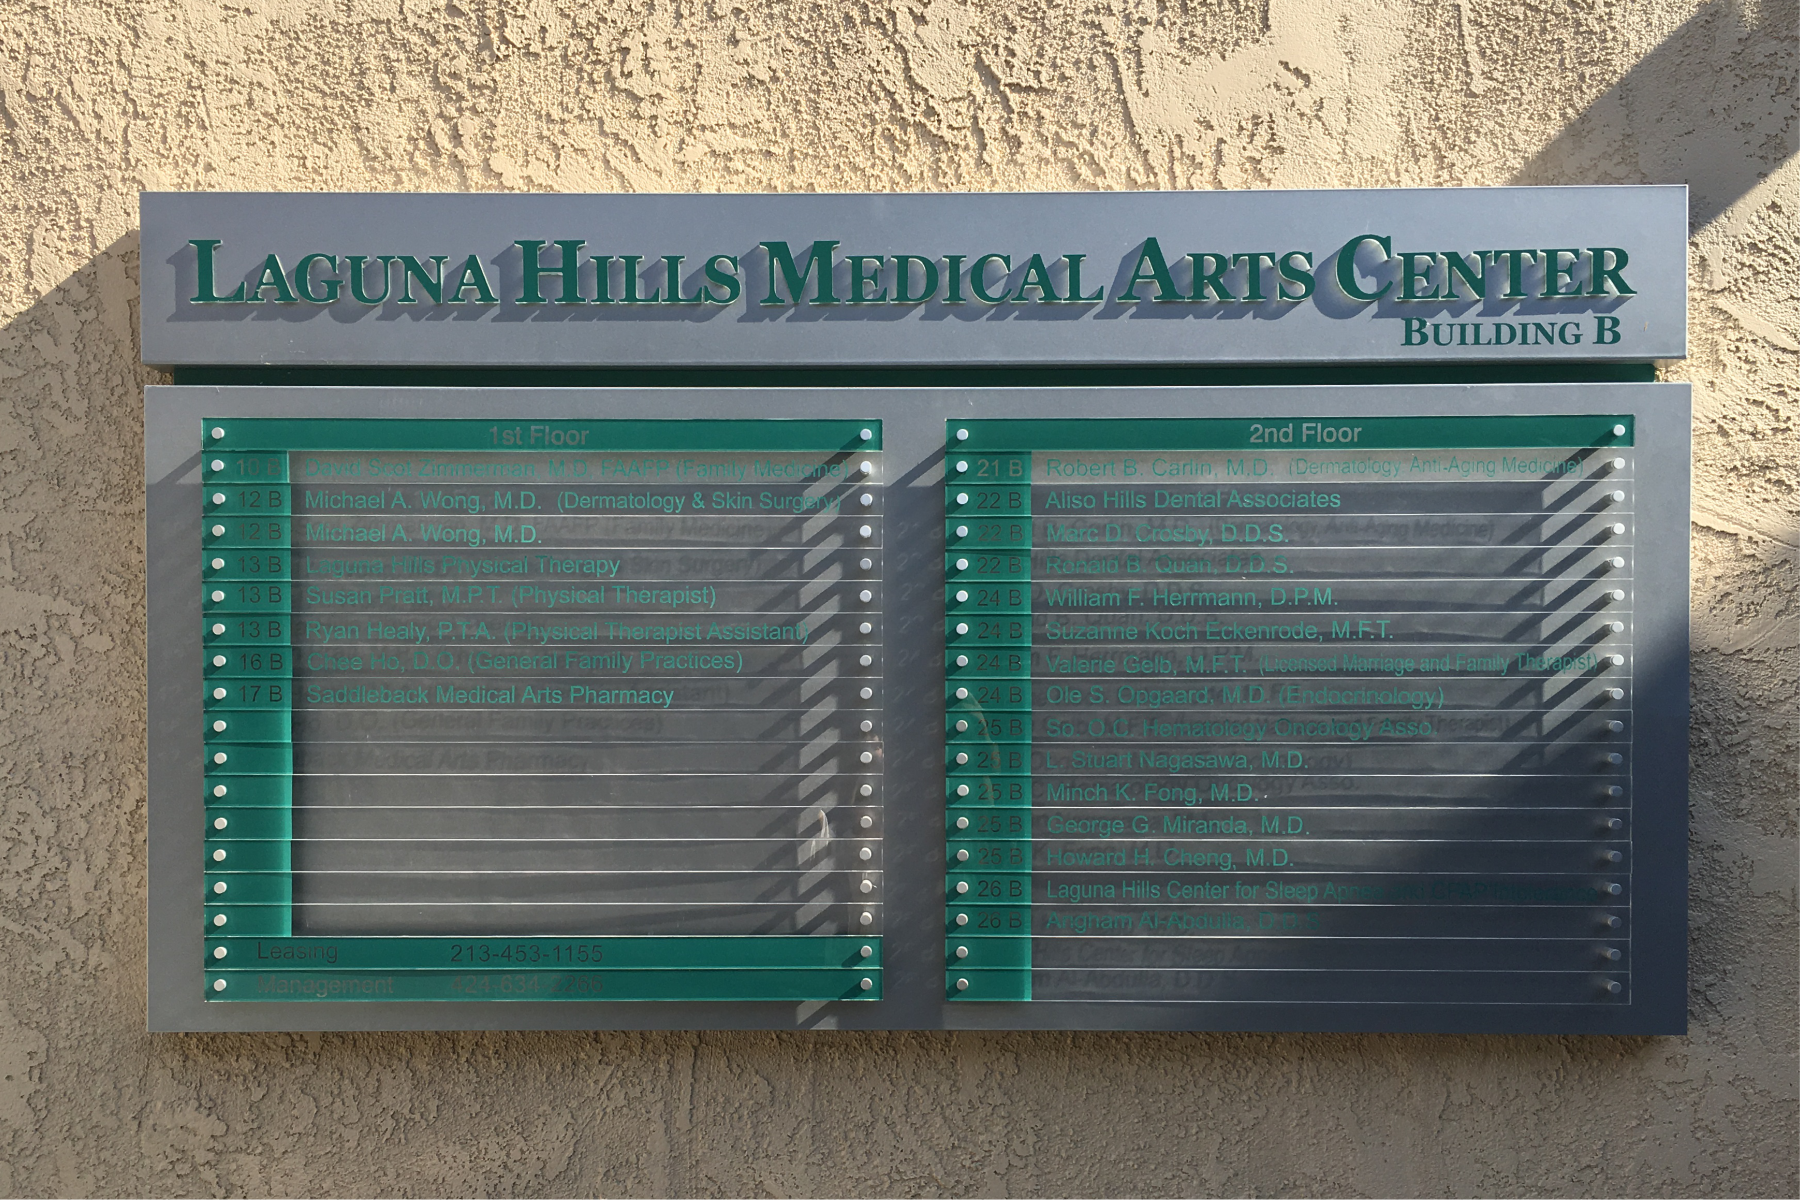 Laguna Hills Medical Art Center